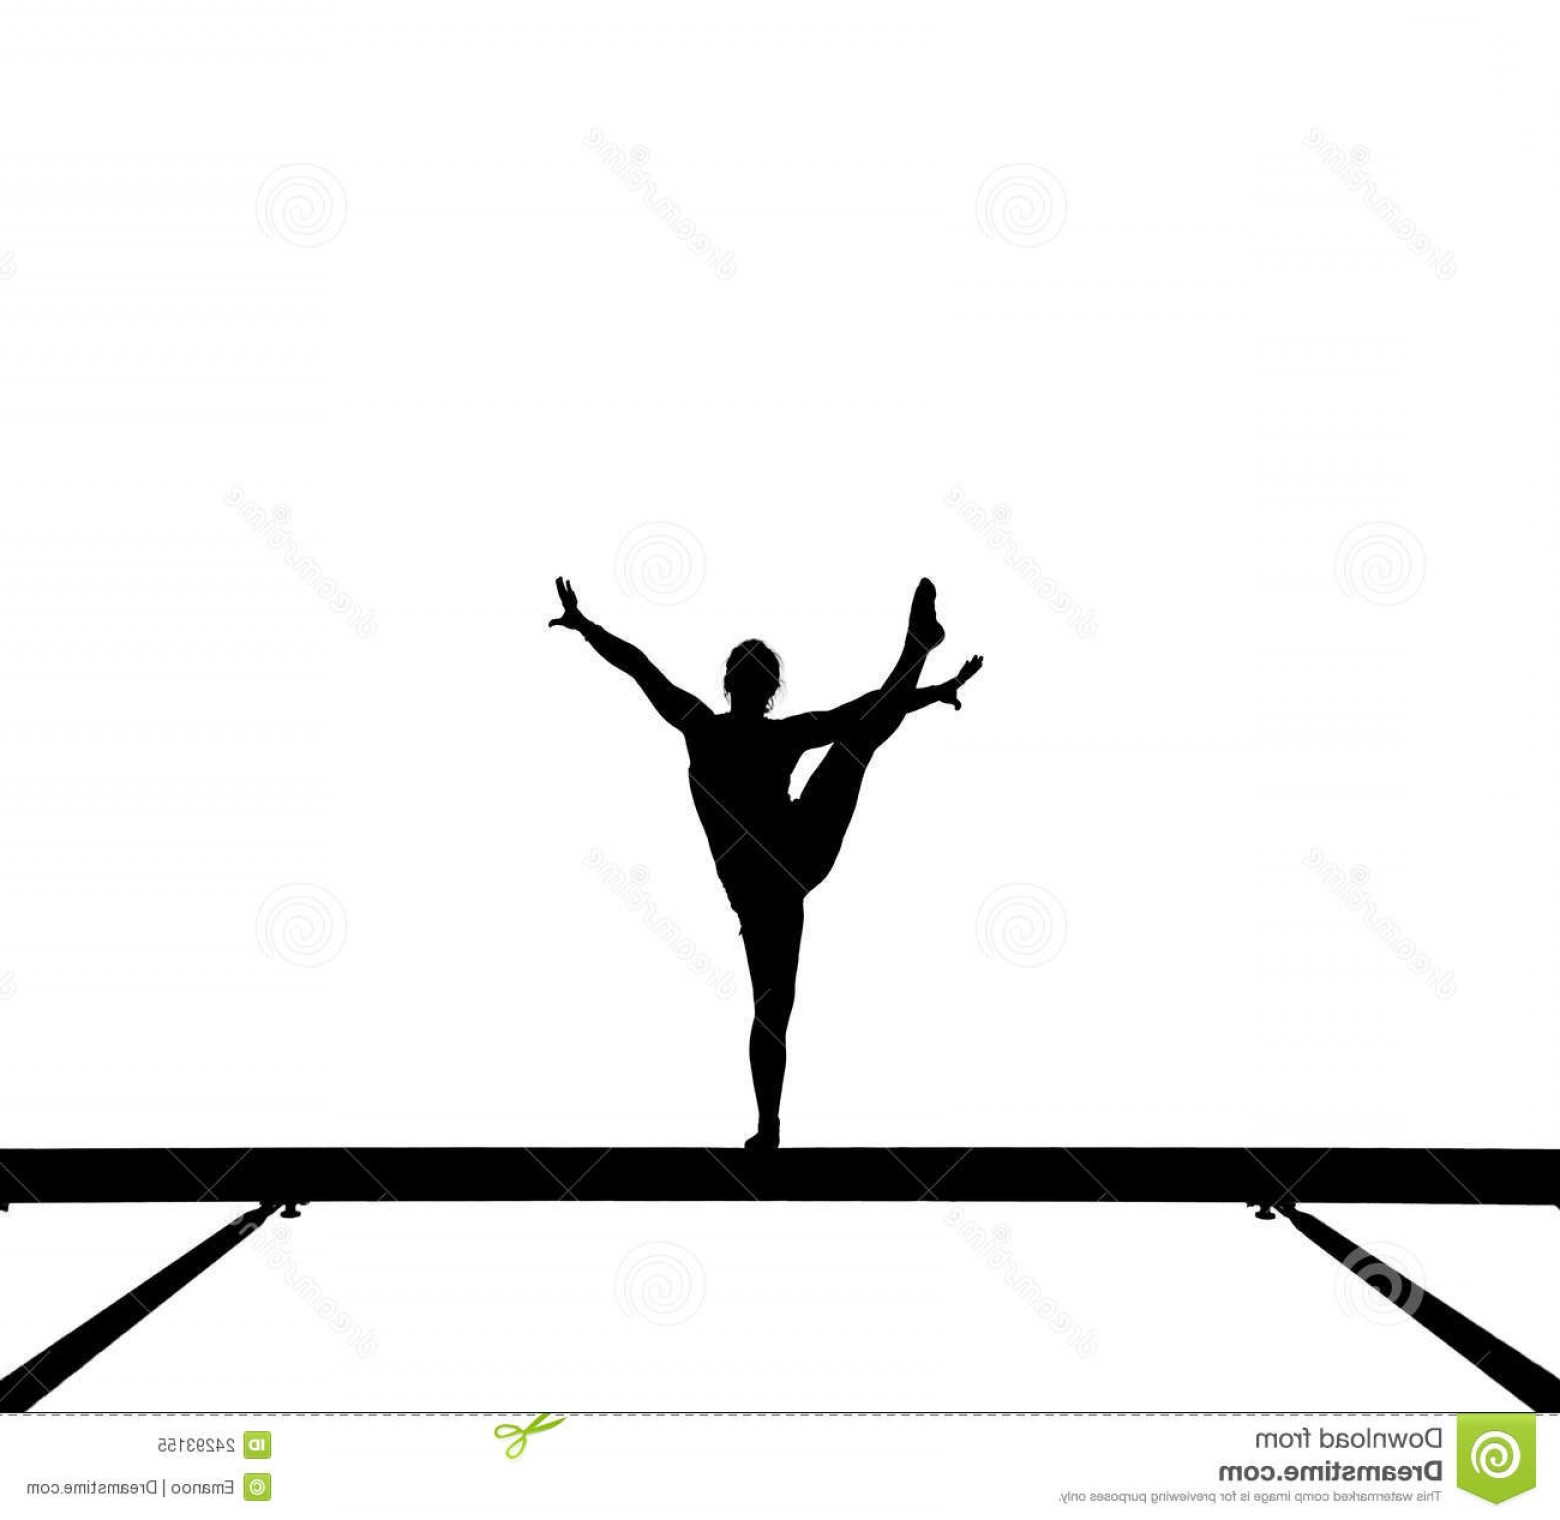 1560x1520 Royalty Free Stock Photo Gymnast Balance Beam Gymnastics